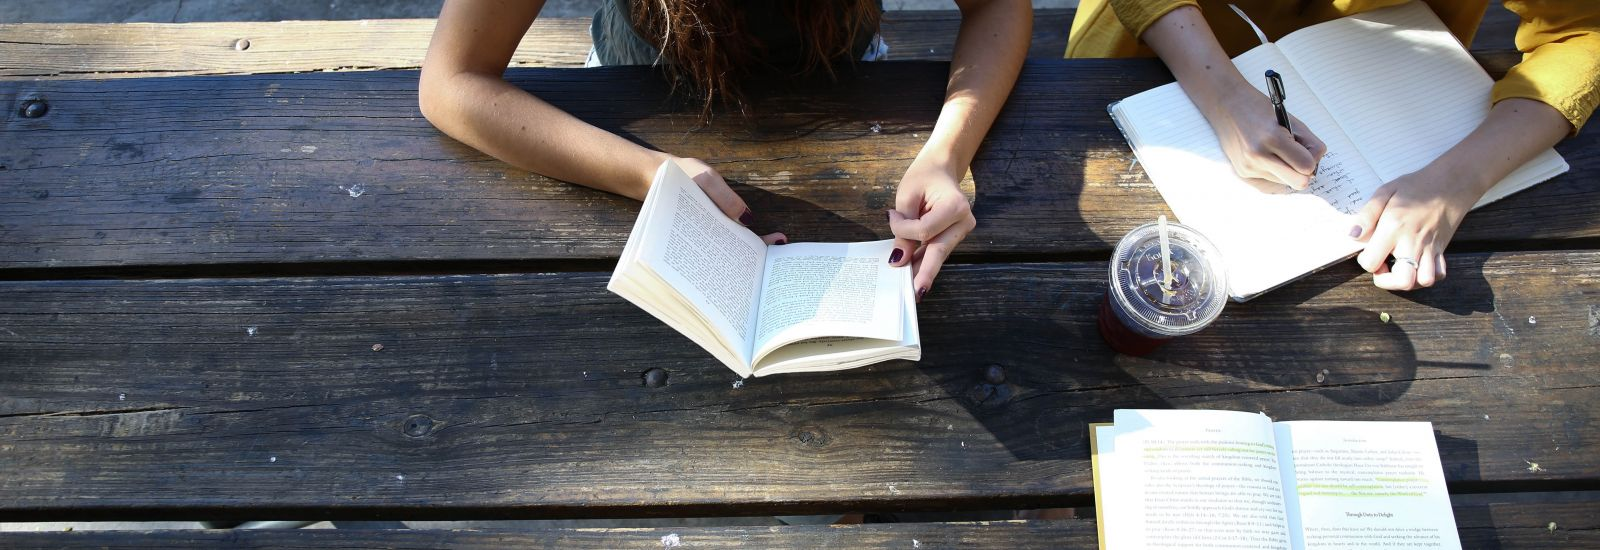 Three girls sitting around wooden table with open books